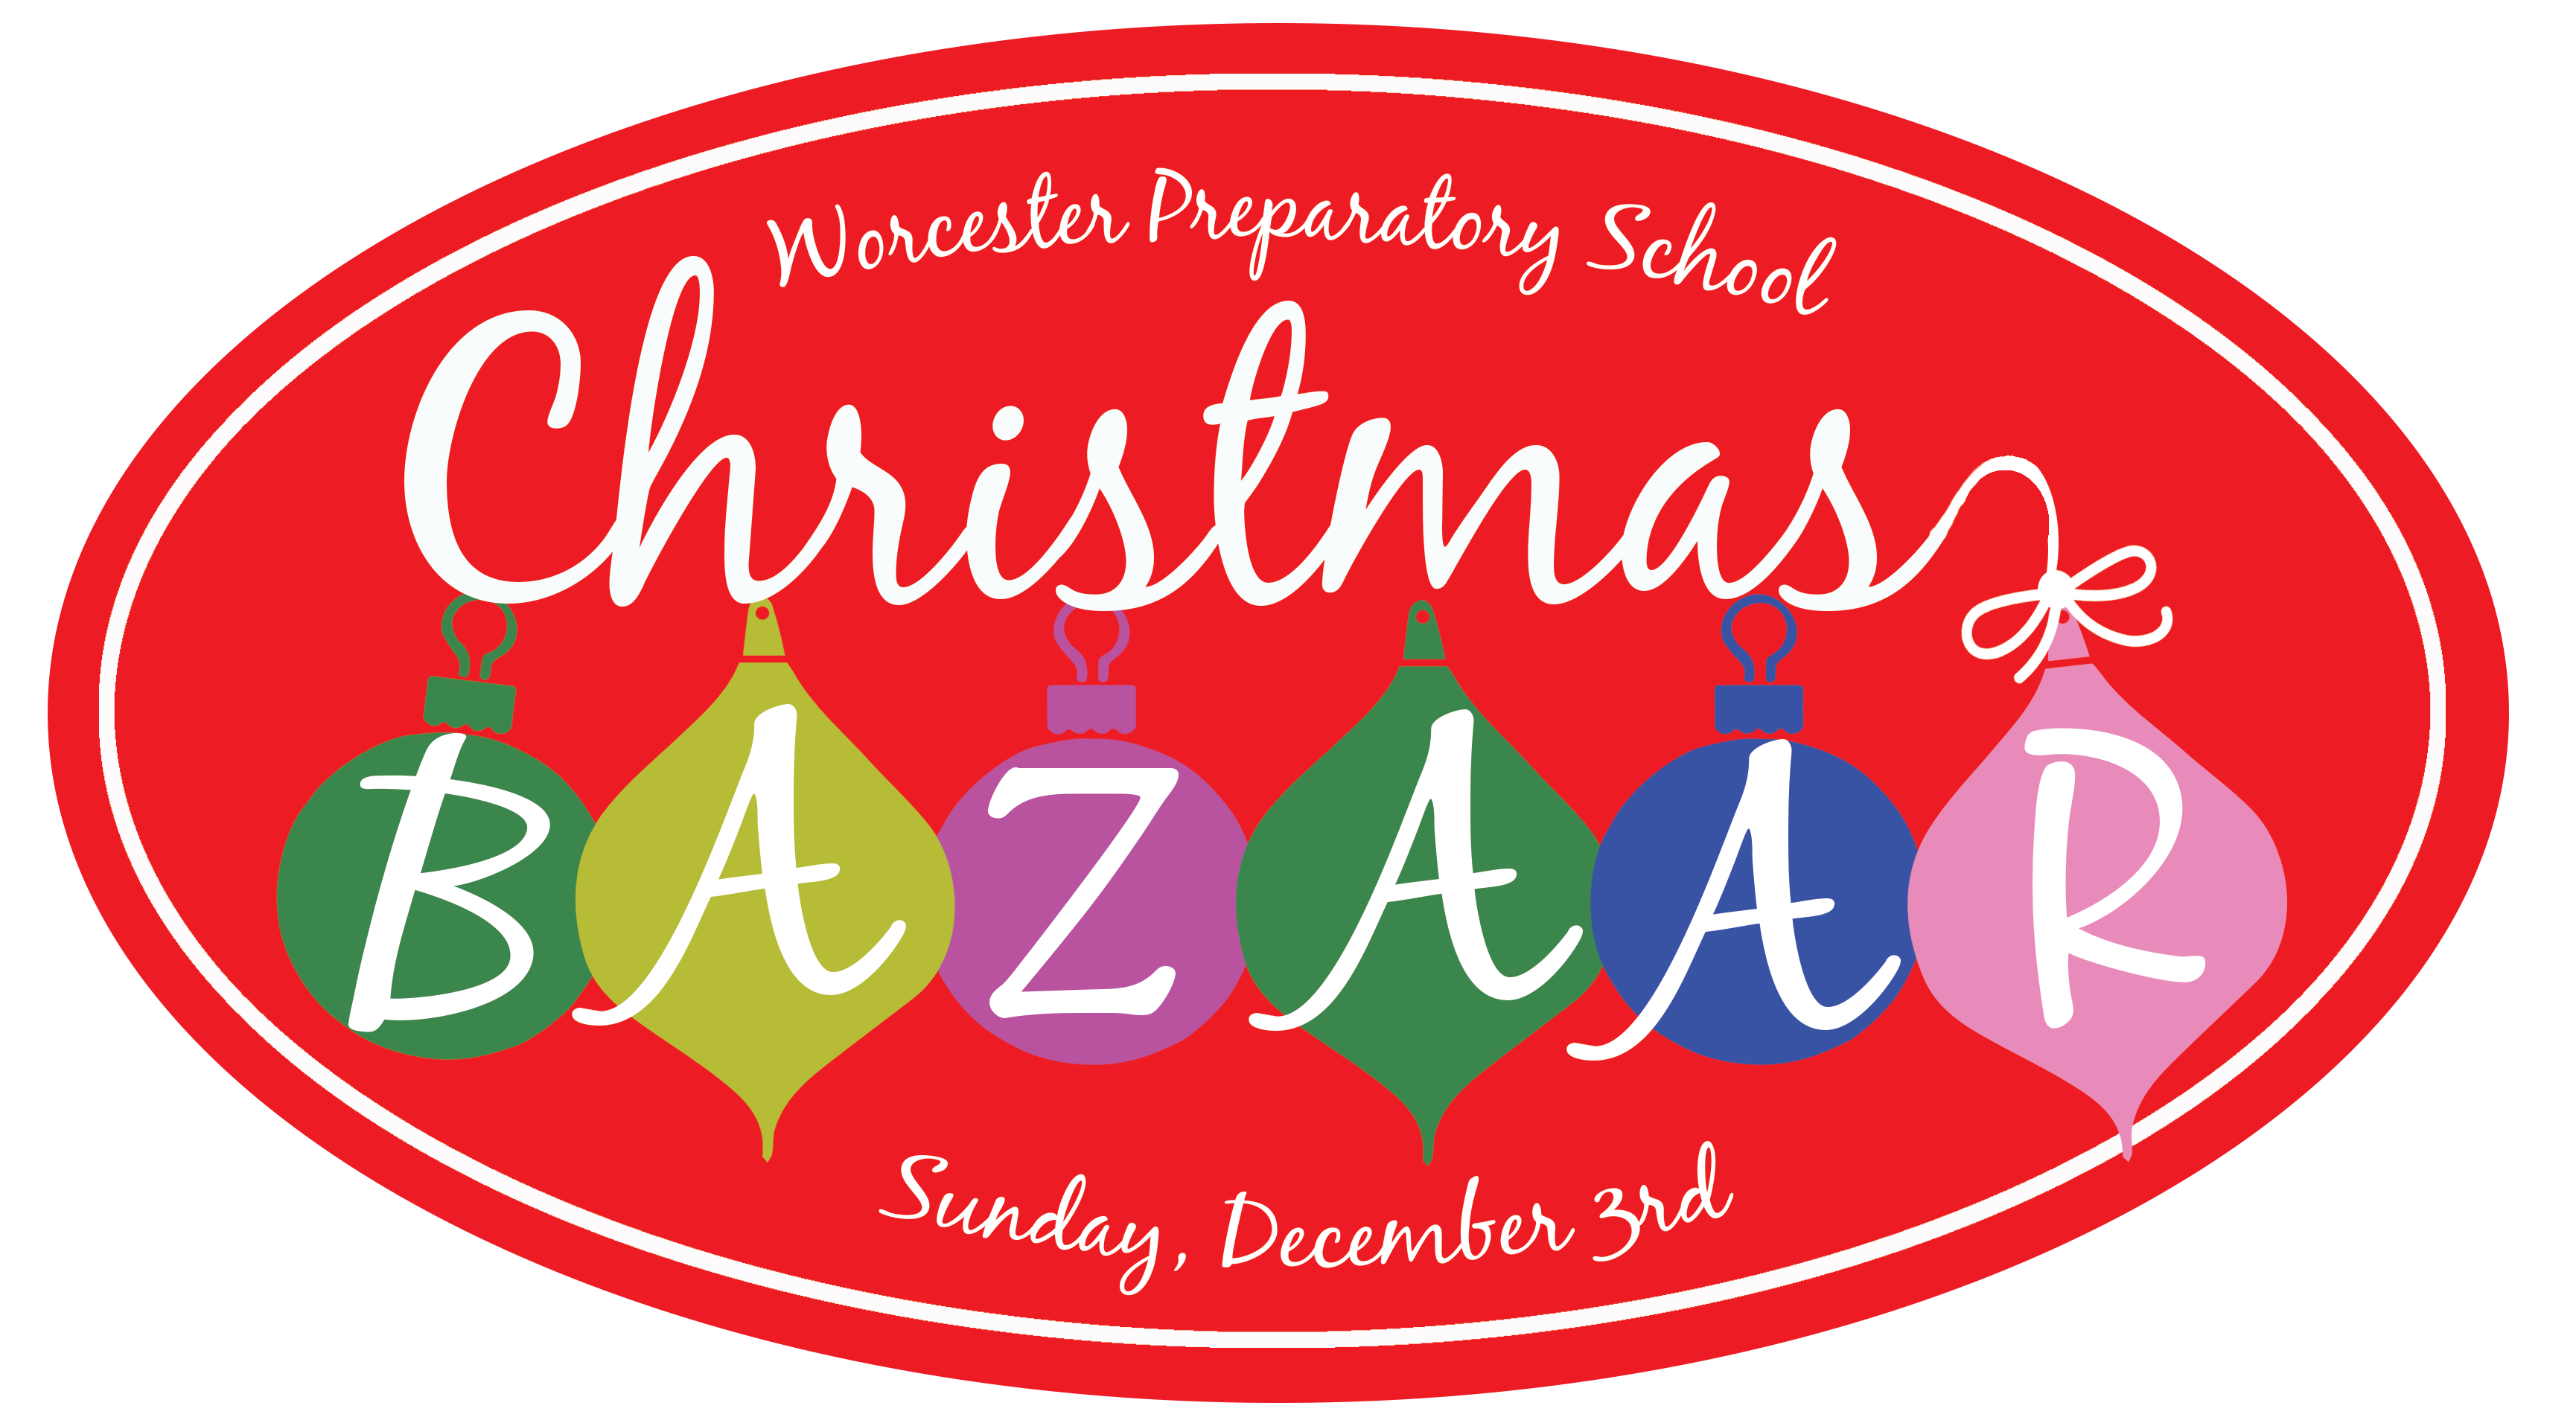 the 46th annual worcester preparatory school christmas bazaar will take place on sunday december 3rd from 11 am 4 pm in downtown berlin maryland